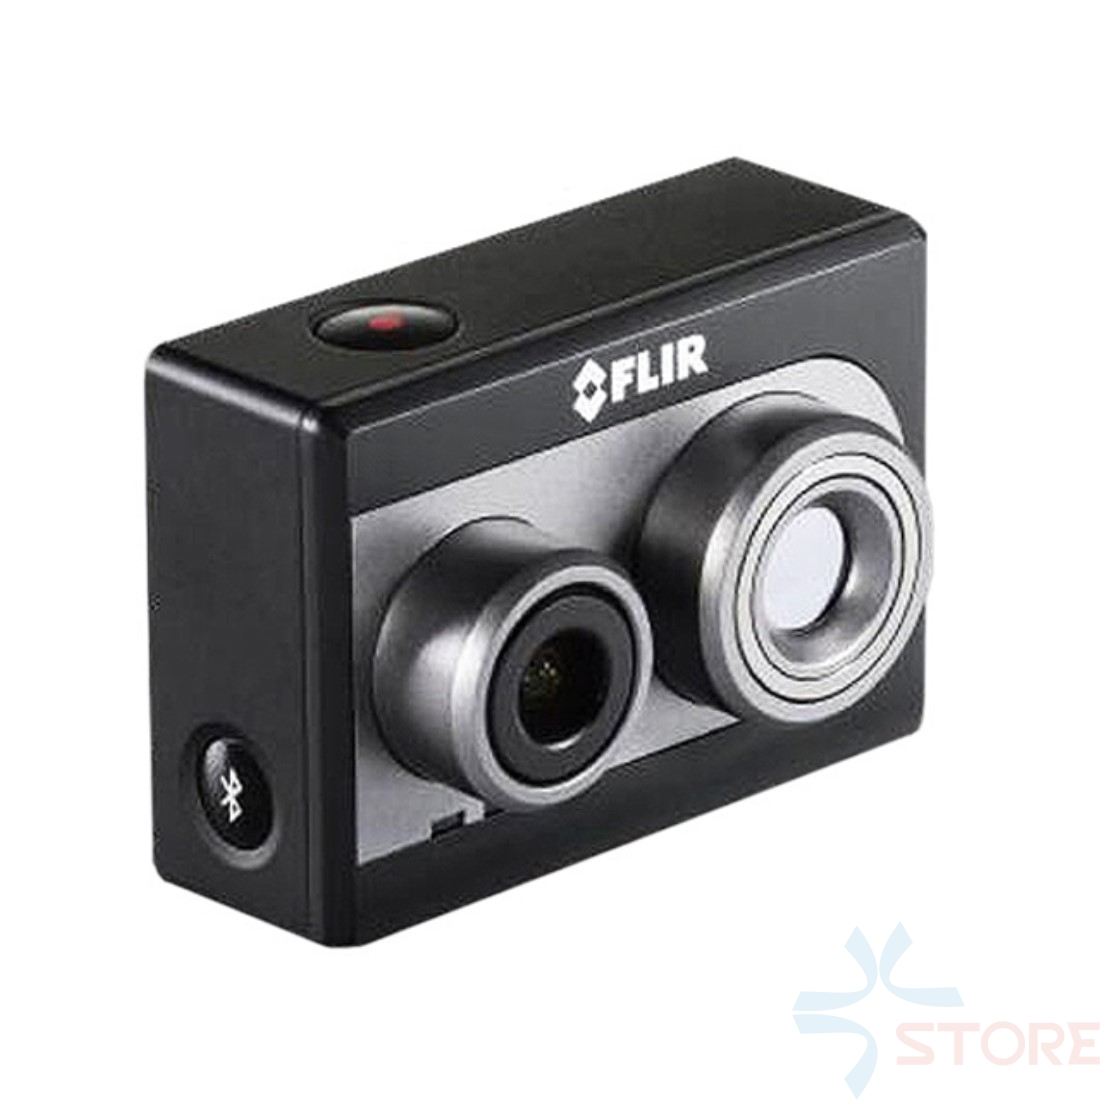 FLIR Duo / FLIR Duo R Compact Dual Sensor Thermal Imager Camera Zize Same to Gopro Specifically for Drones freeshipping flir c2 c3 wi fi all new original infrared thermal imager ir camera heat sensor flir c2 c3